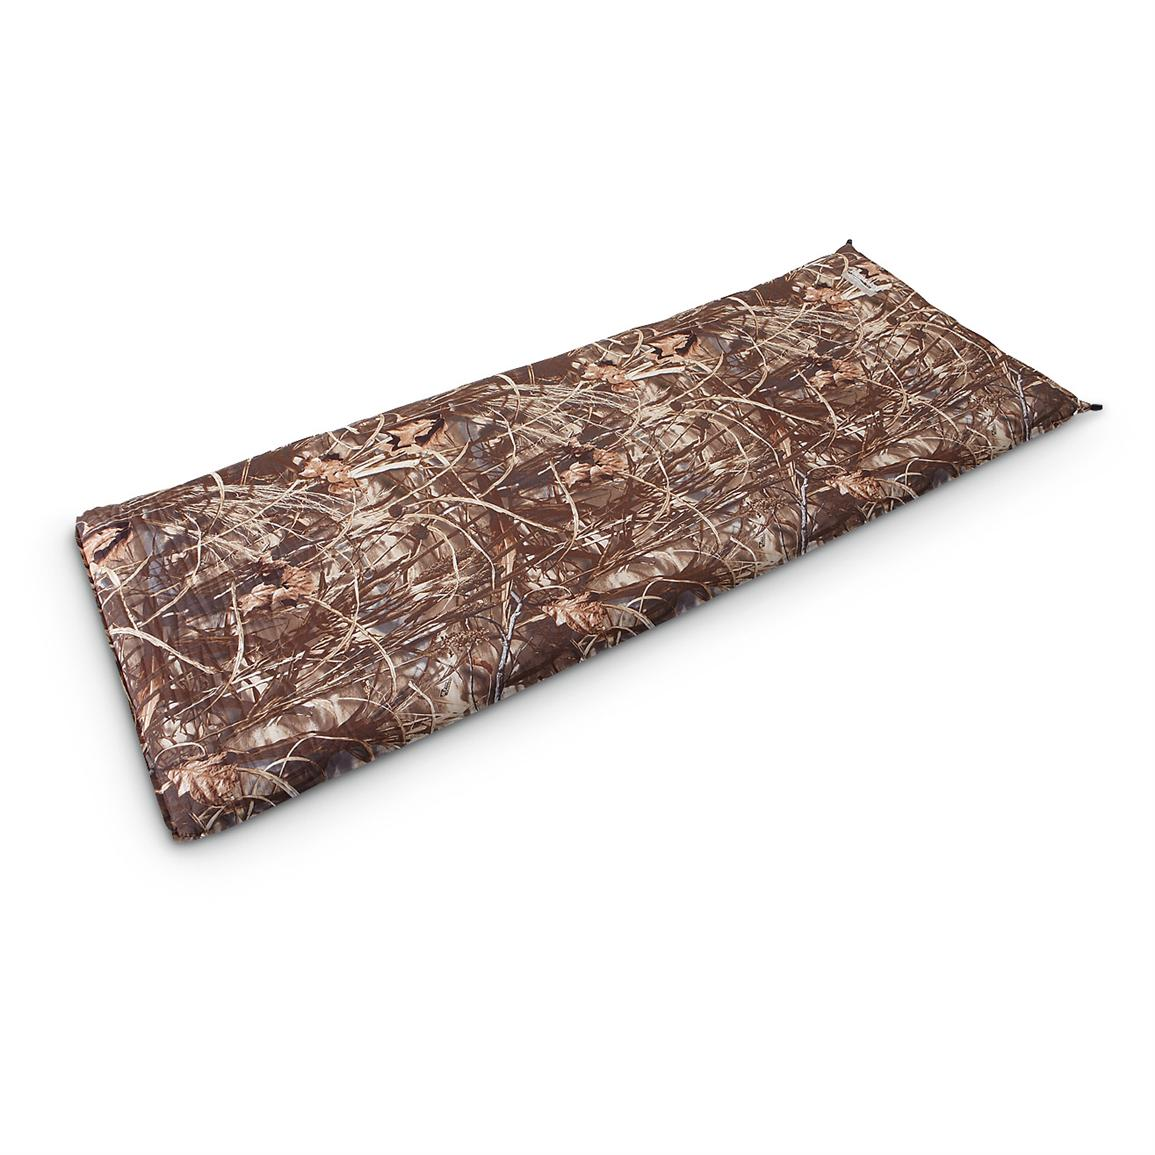 Thermarest® Deluxe XL Mat, Camo